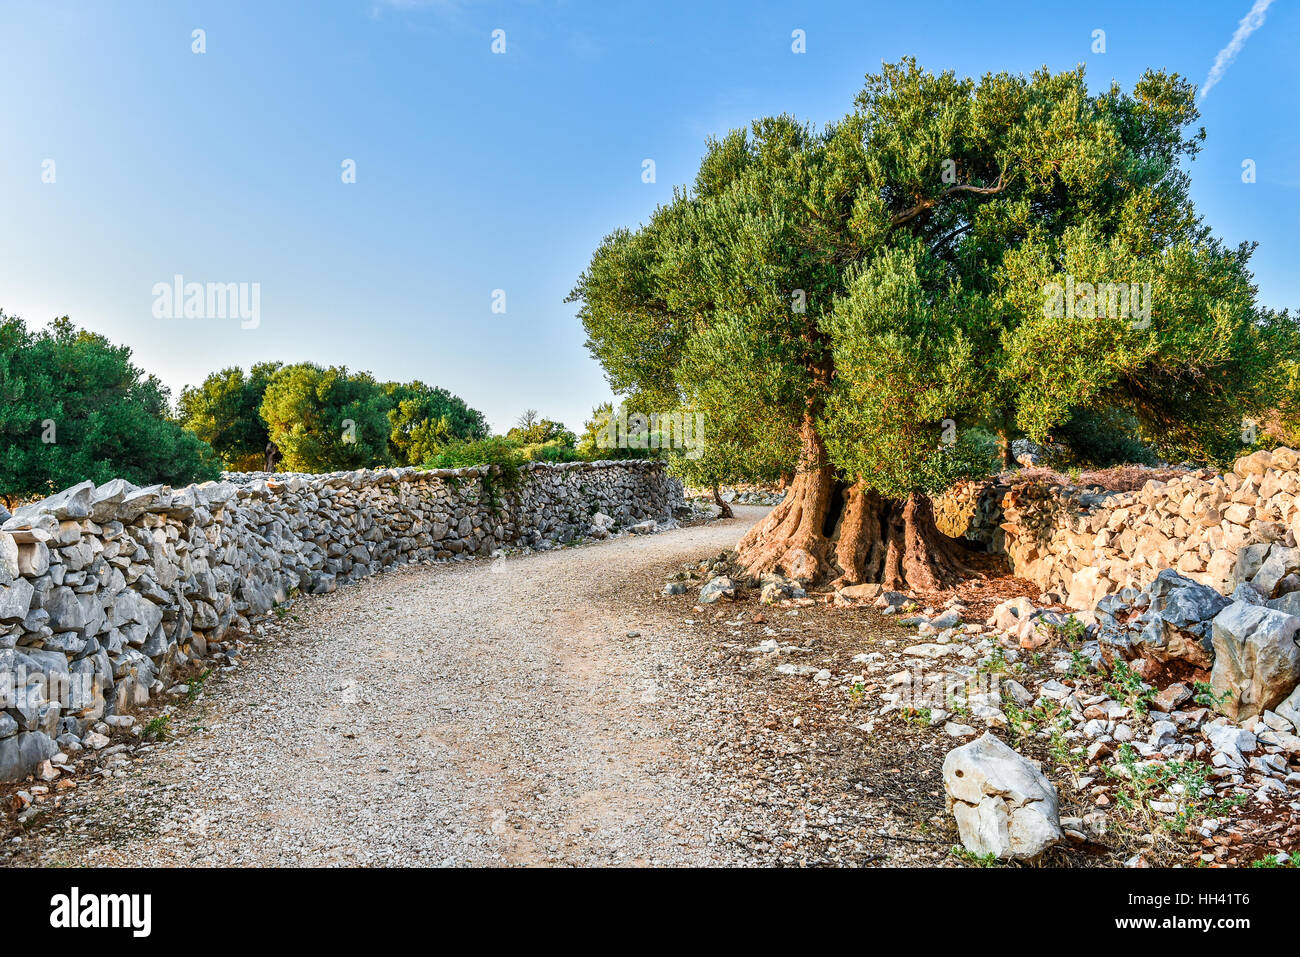 Big And Old Ancient Olive Tree In The Olive Garden In Mediterranean Stock  Photo: 131010998   Alamy